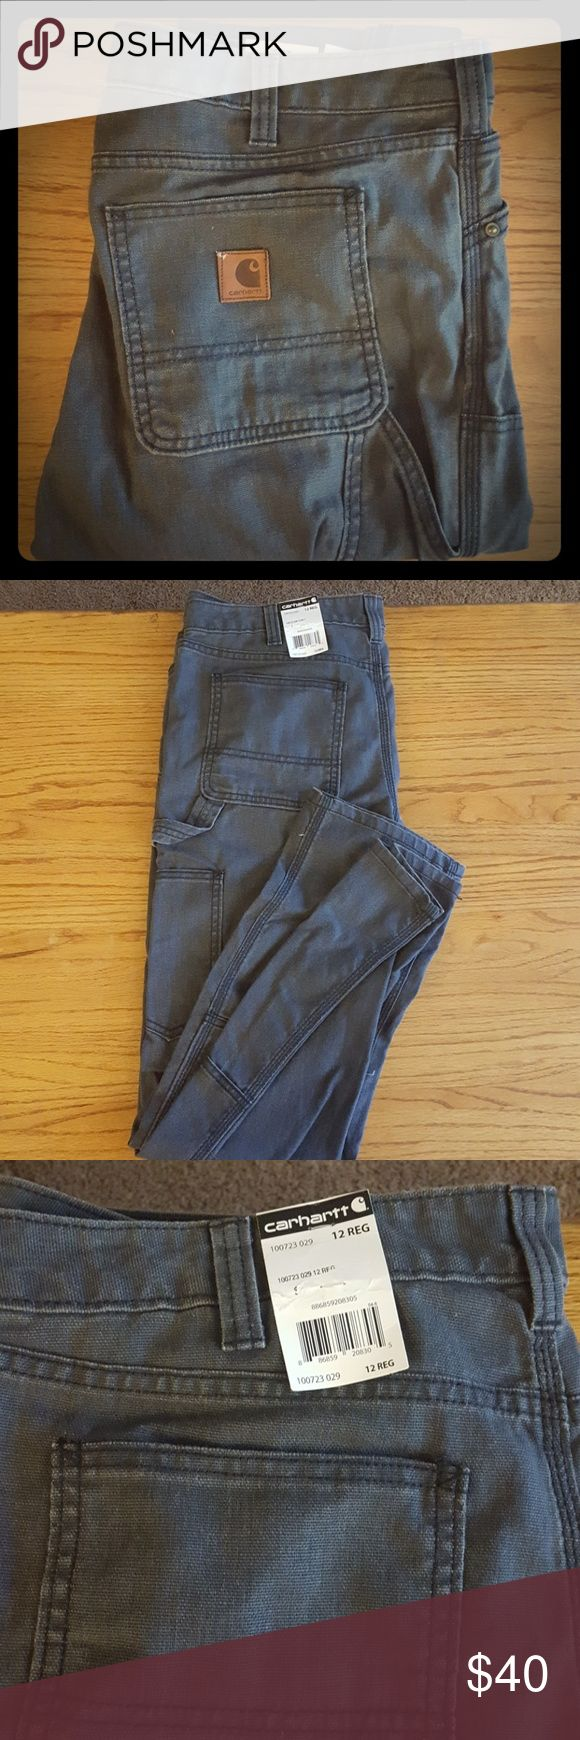 Carhartt womens jeans Brand new, never worn, grey womens carhartts with pockets on the sides Carhartt Jeans Boot Cut